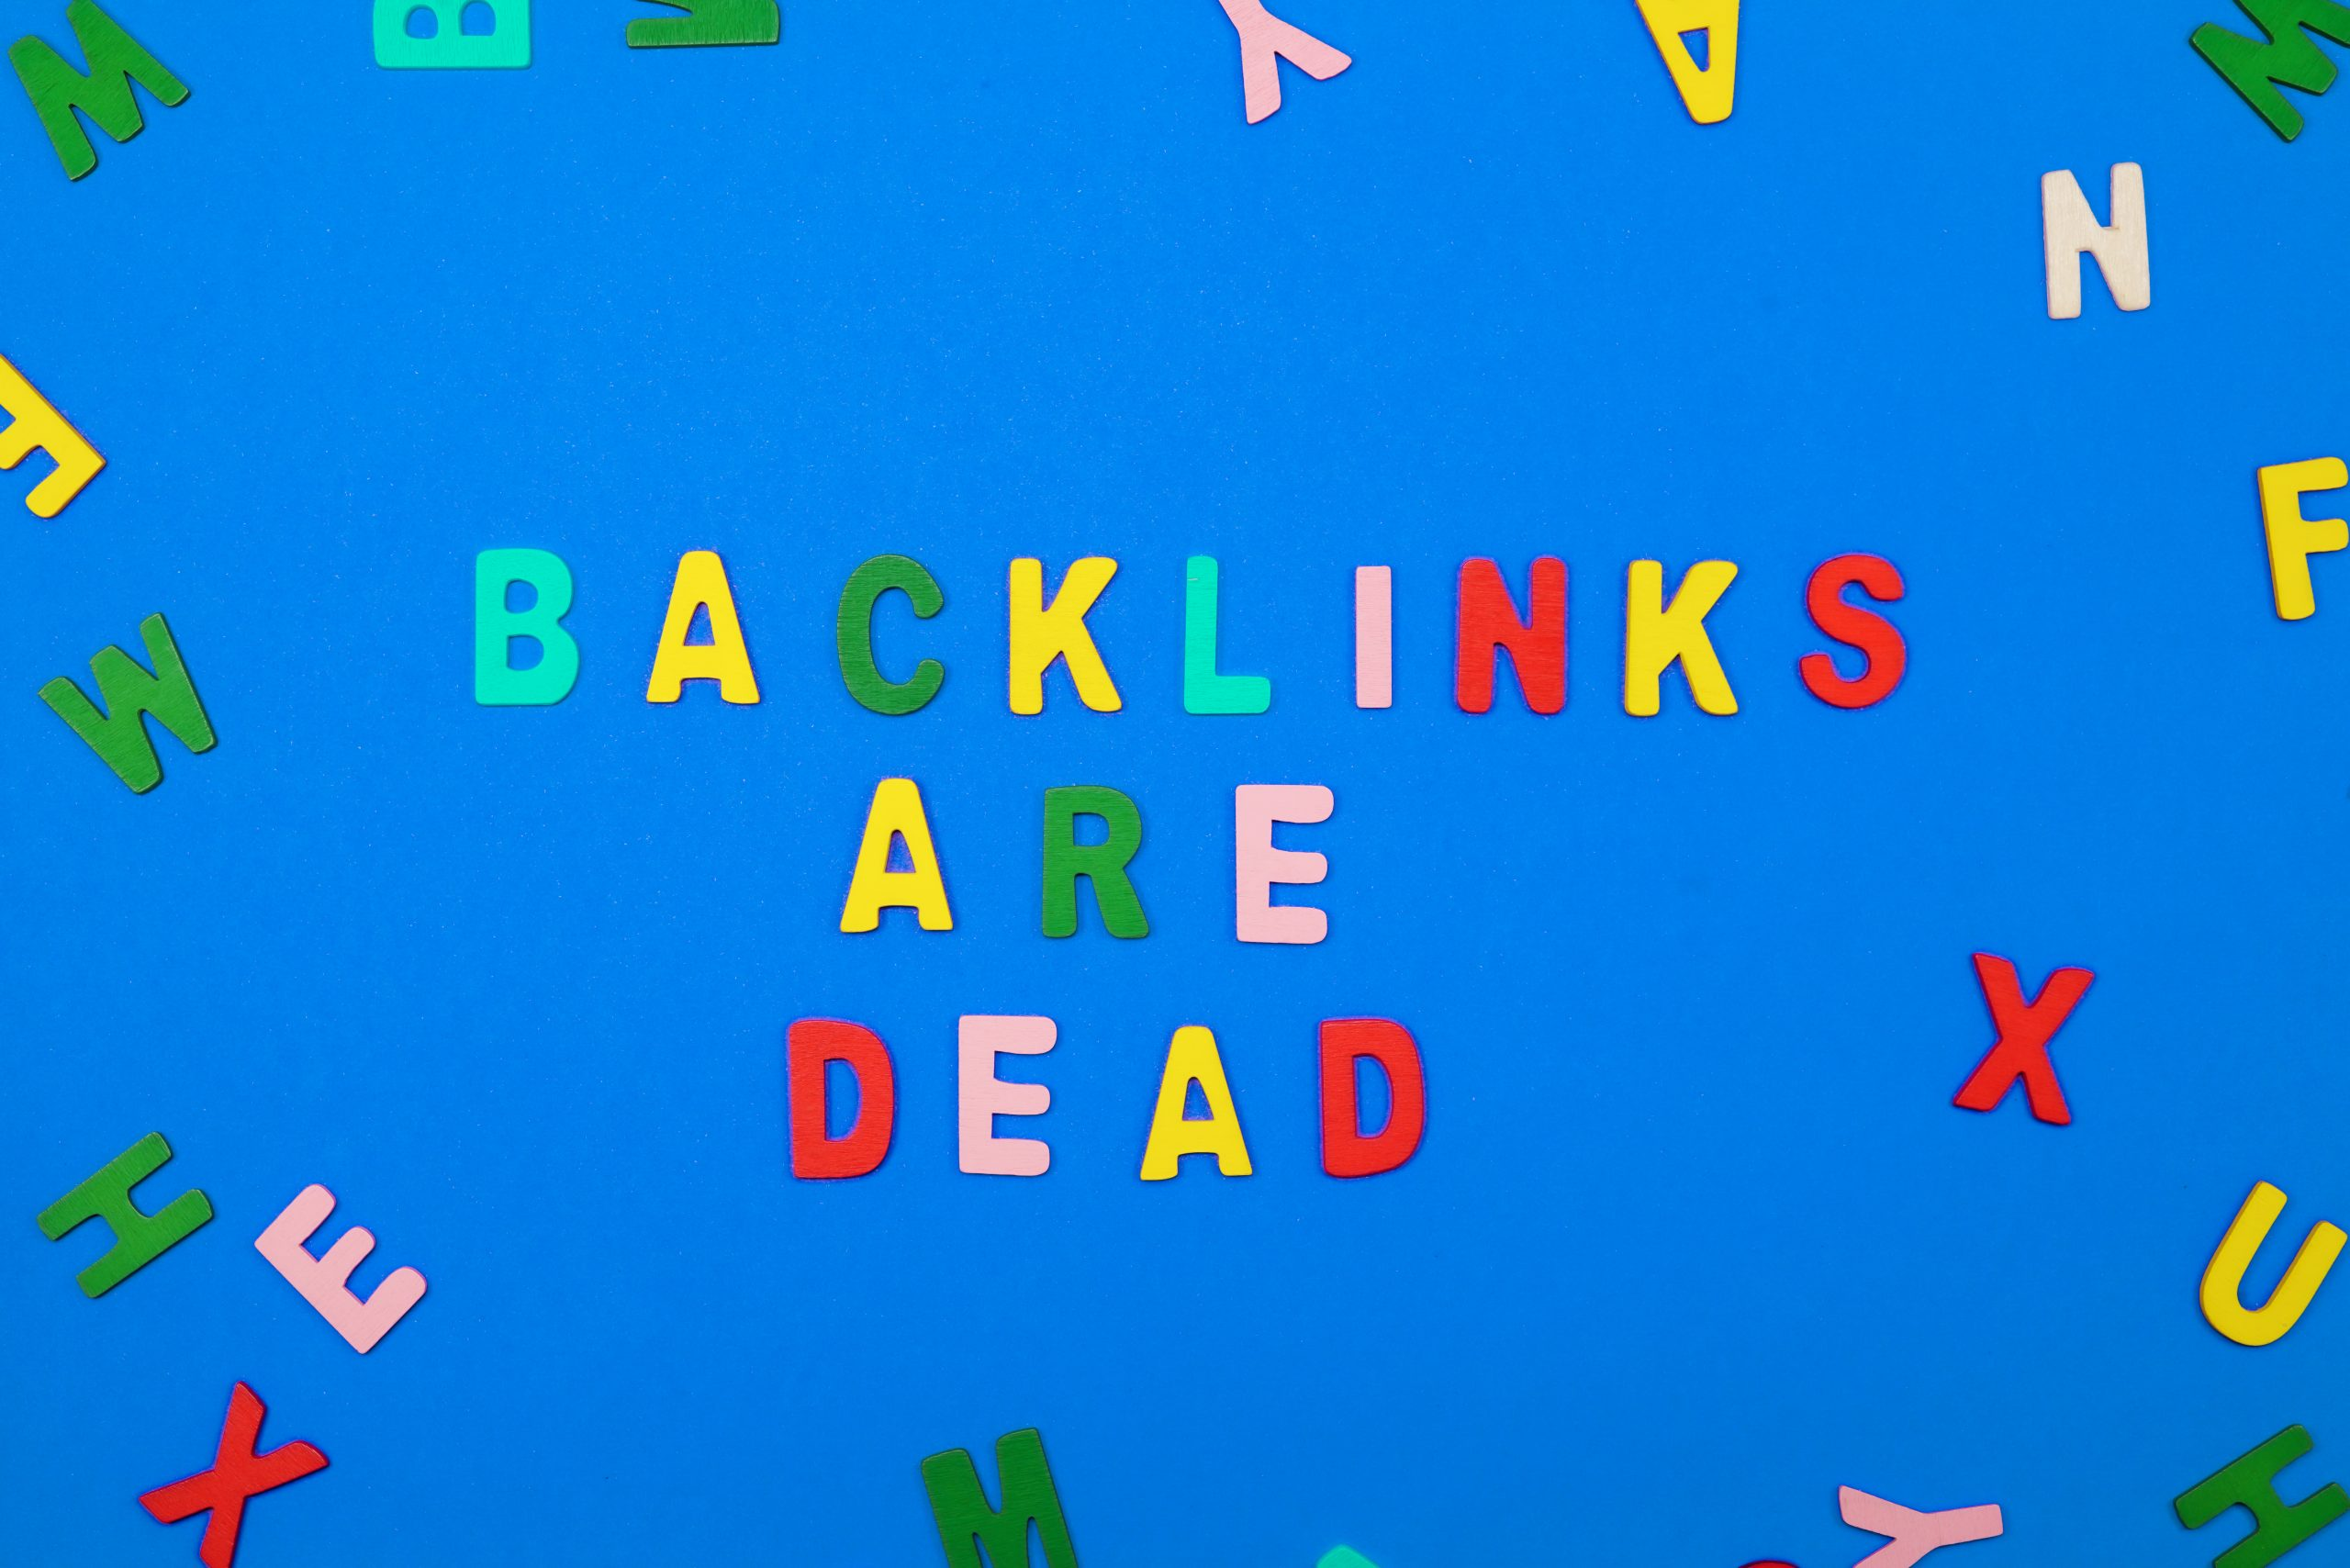 Backlinks Are Dead